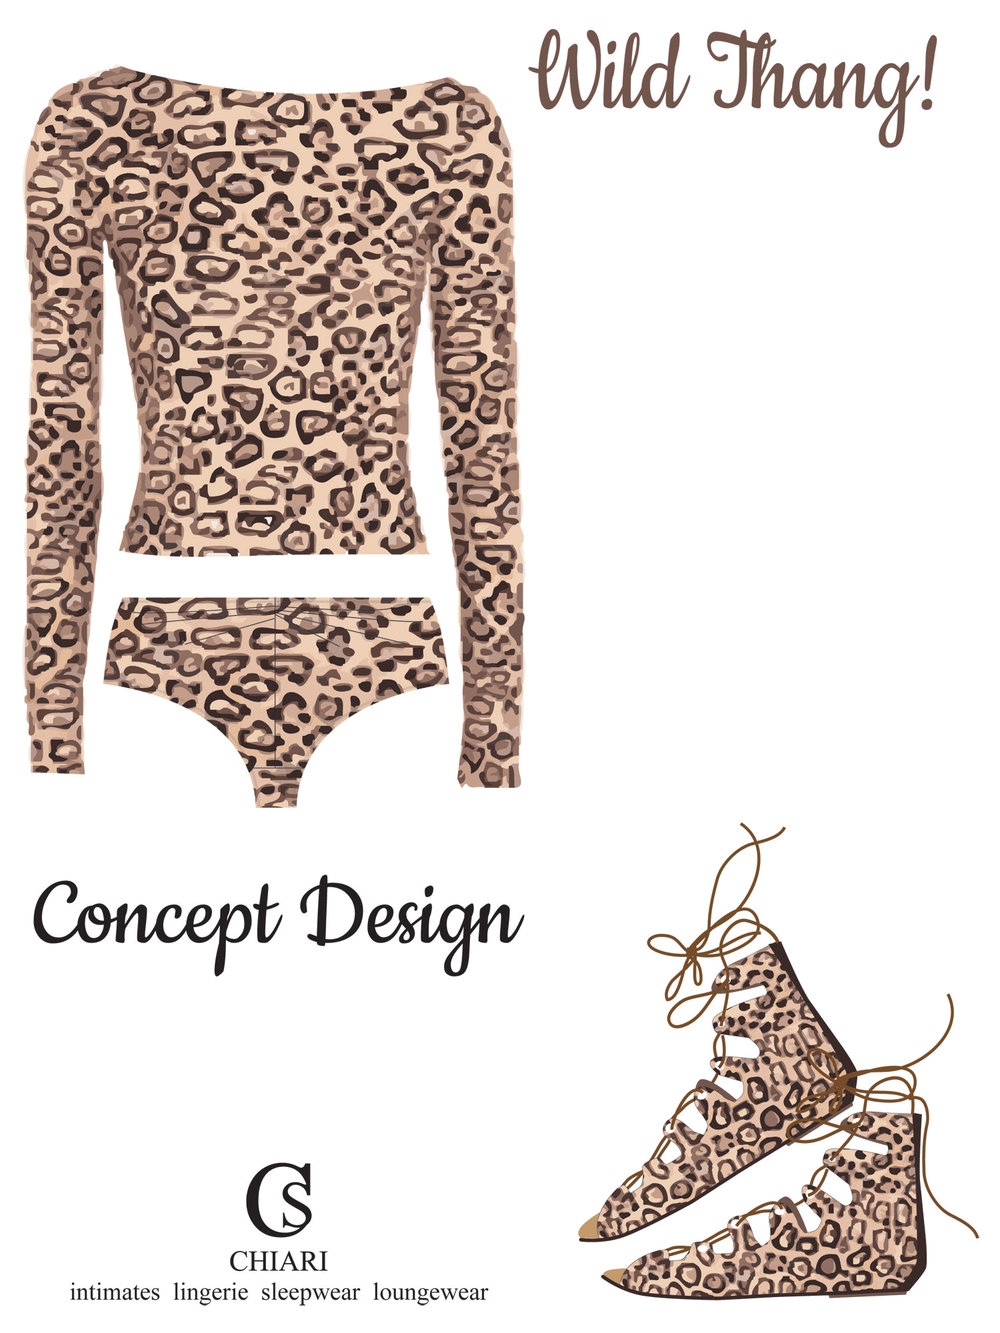 shop-concept-design-wildthang-charistyle.jpg